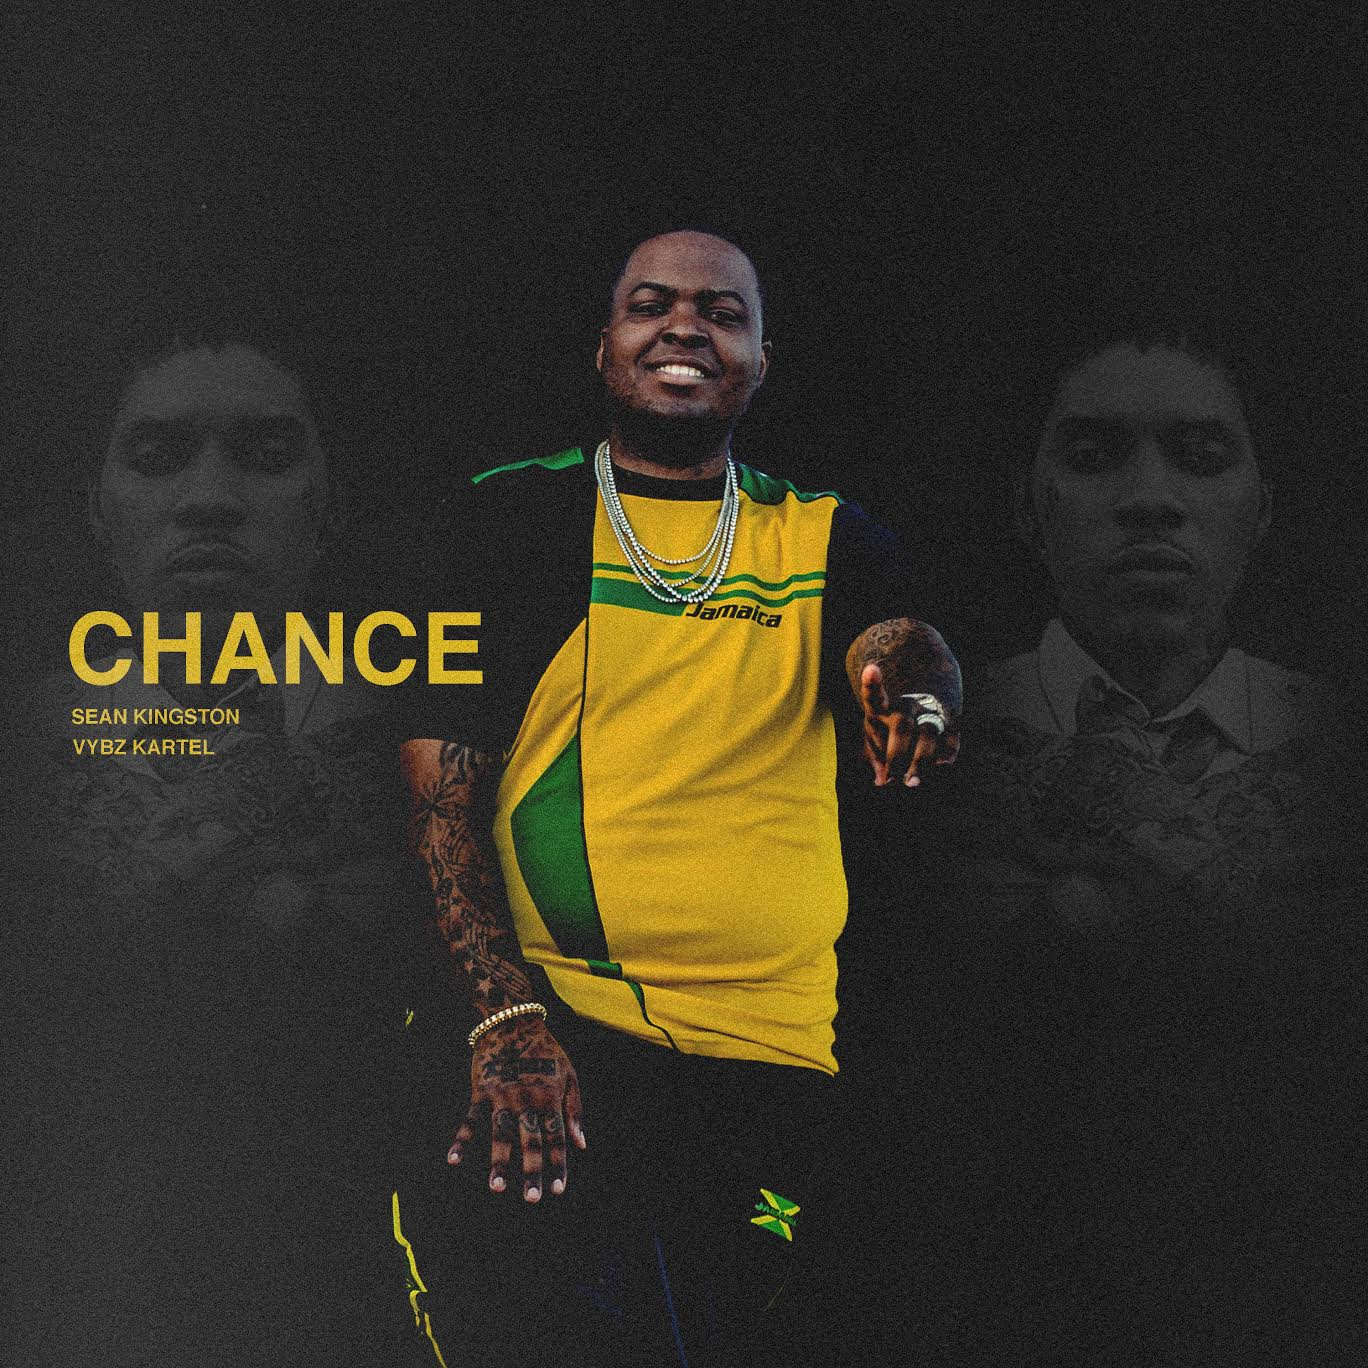 sean-kingston-chance-new-song